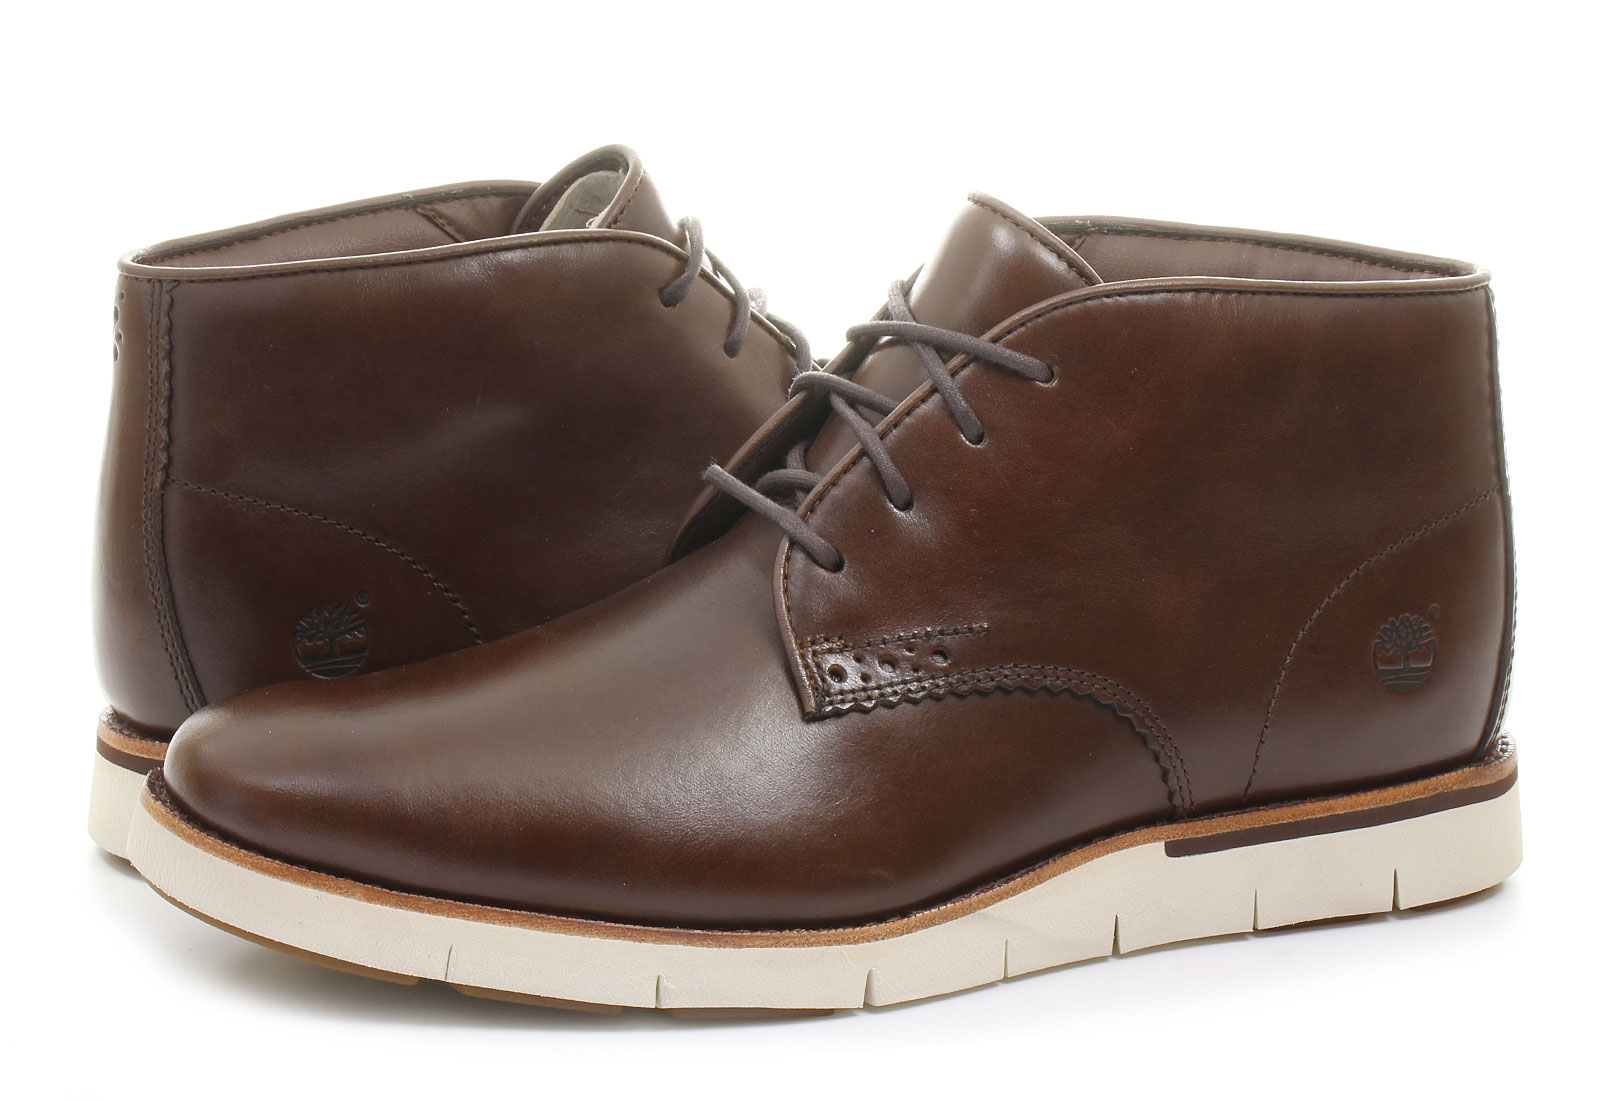 hot sale online f59af d91d2 Timberland Shoes - Preston Hills Chukka - a16sk-brn - Online shop for  sneakers, shoes and boots